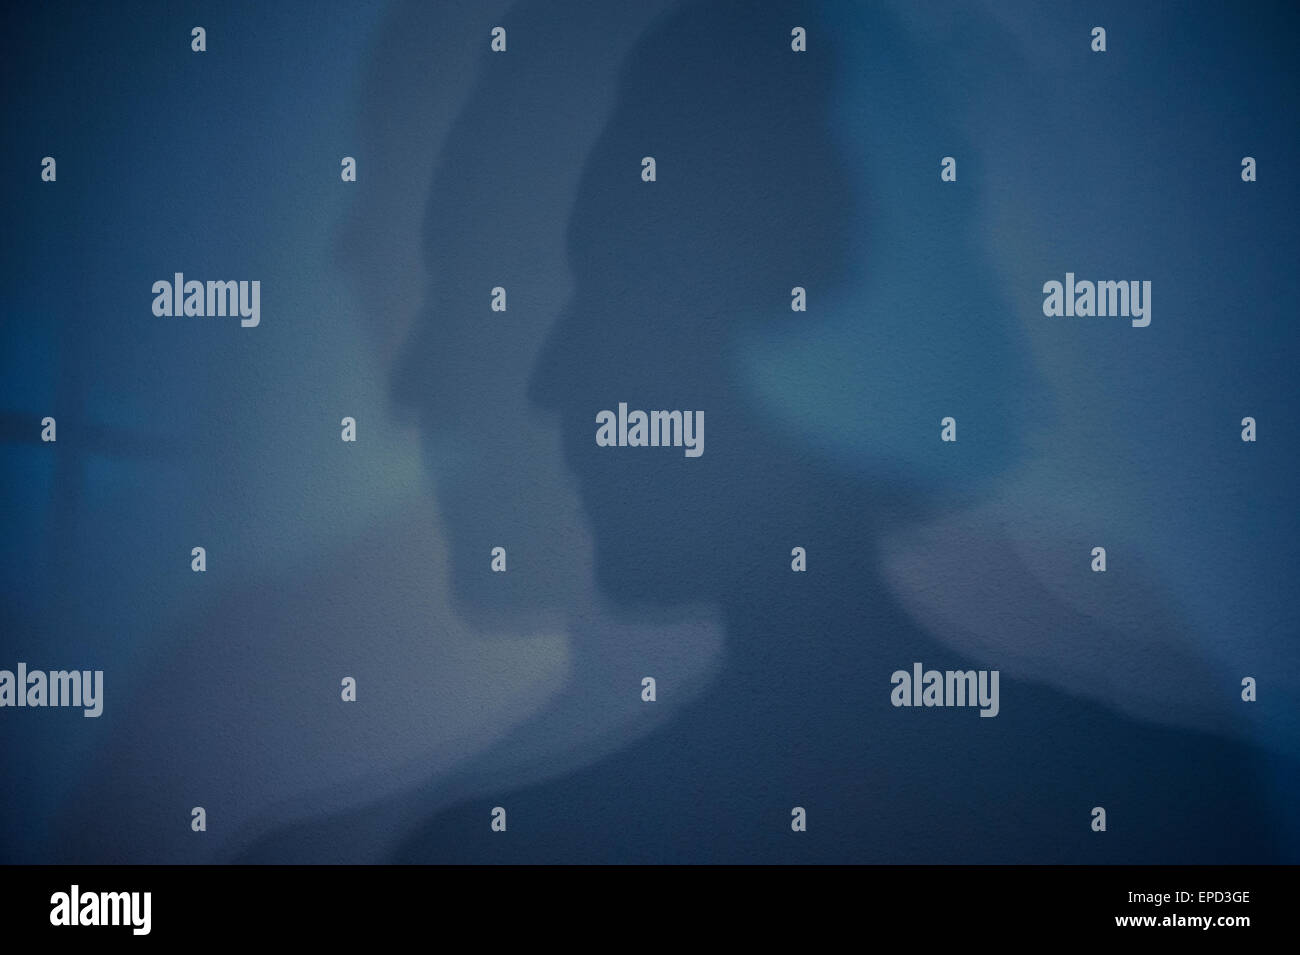 Silhouetted faces projected on wall multiple personality disorder - Stock Image